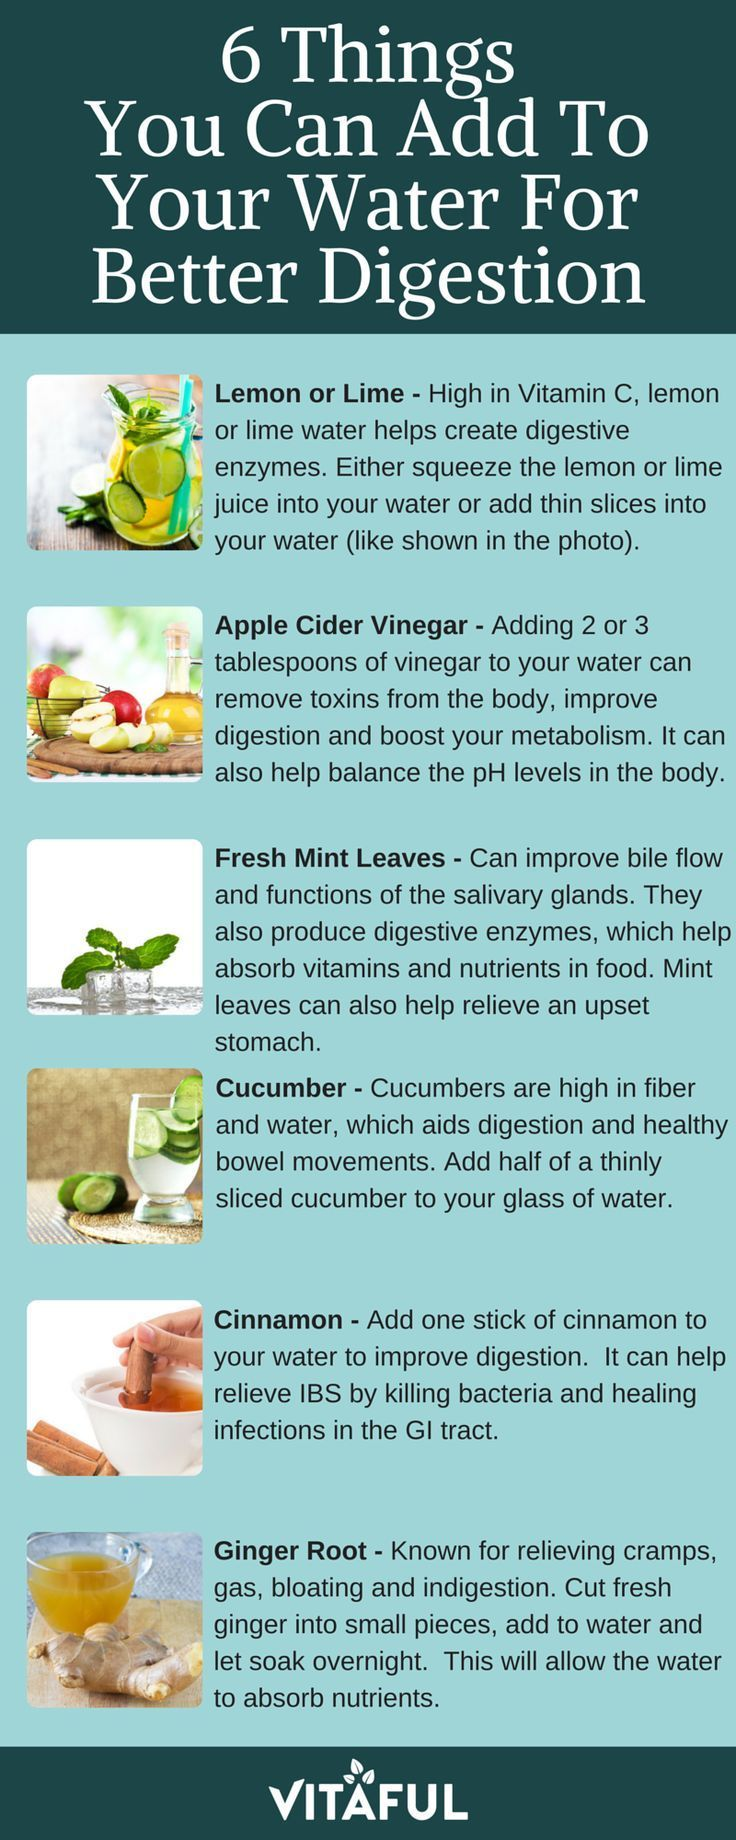 6 Things You Can Add To Your Water For Better Digestion   Detox Water   Gut Health  